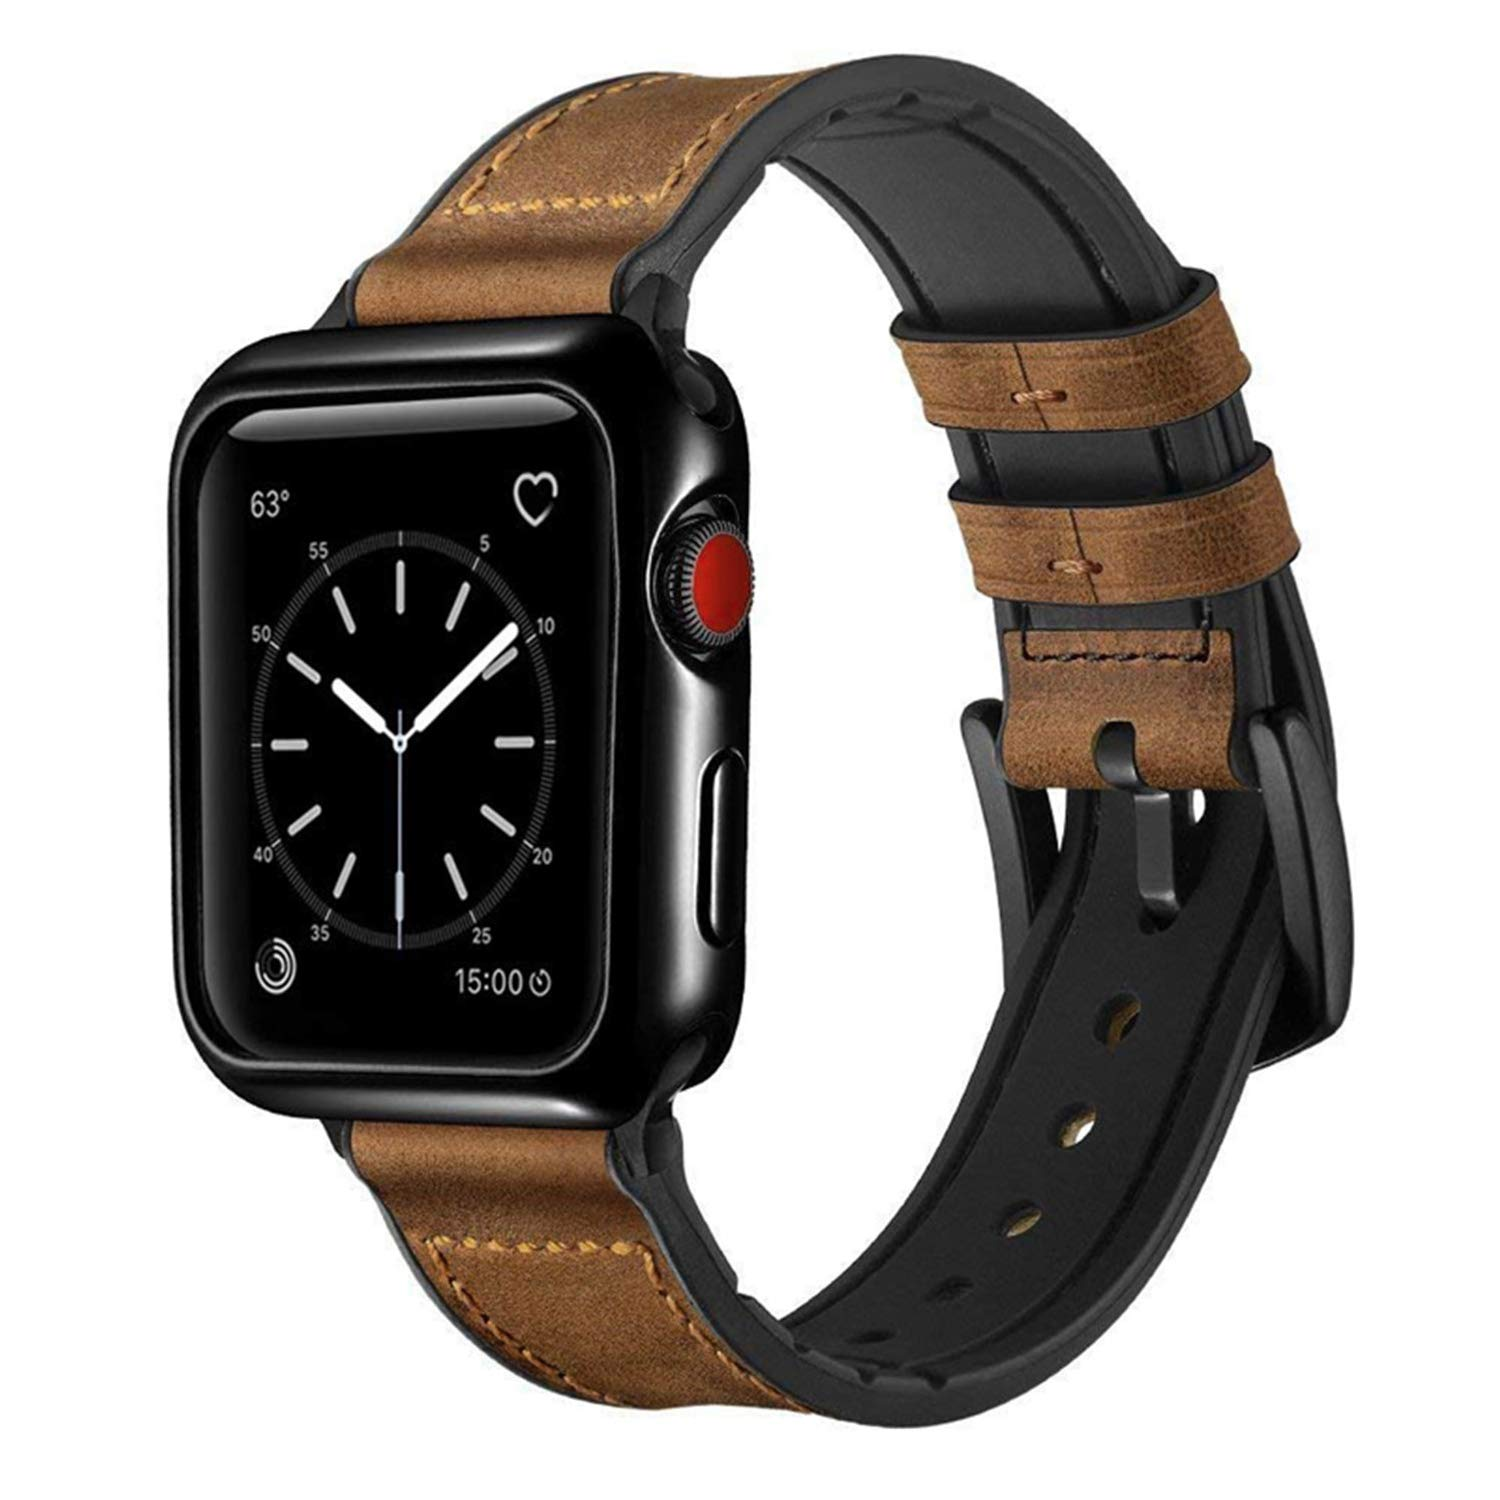 Speidel 42mm Light Brown Luxury watchband with Black Adapters, Buckle and Case Protective Cover for The Apple Watch Series 1,2,3,4 & 5 by Speidel